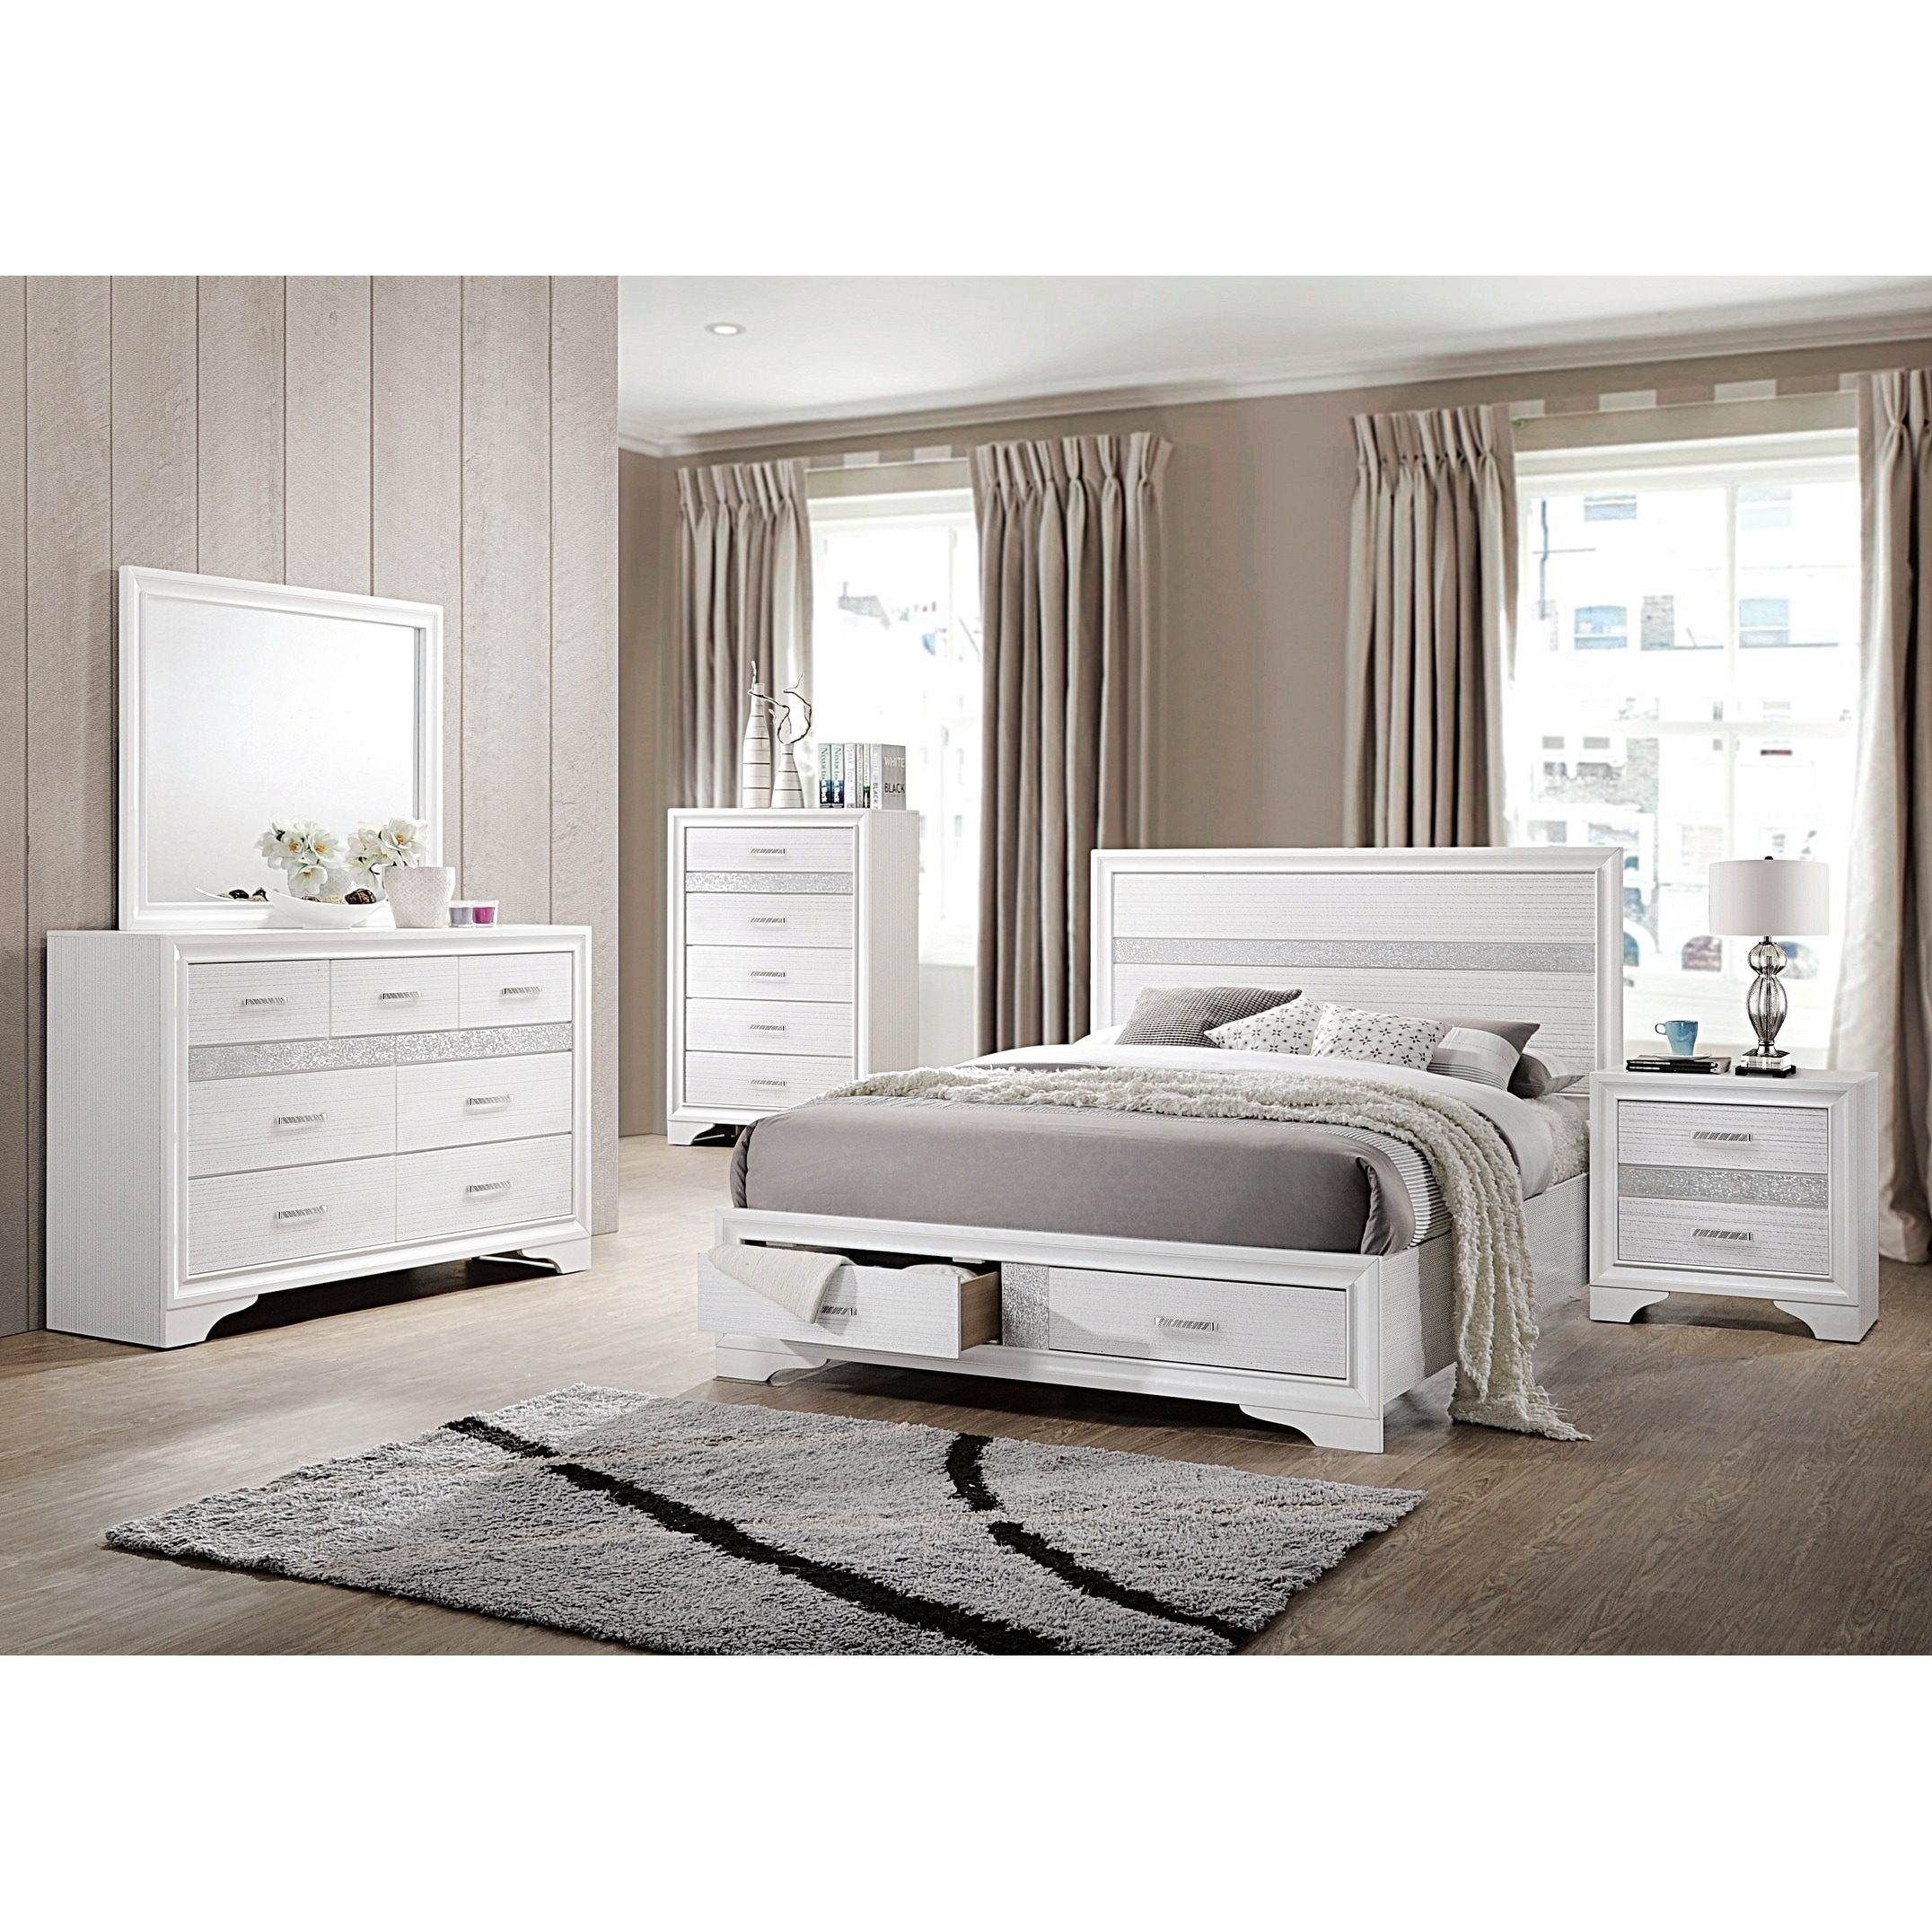 Miranda Contemporary White 5-piece Bedroom Set